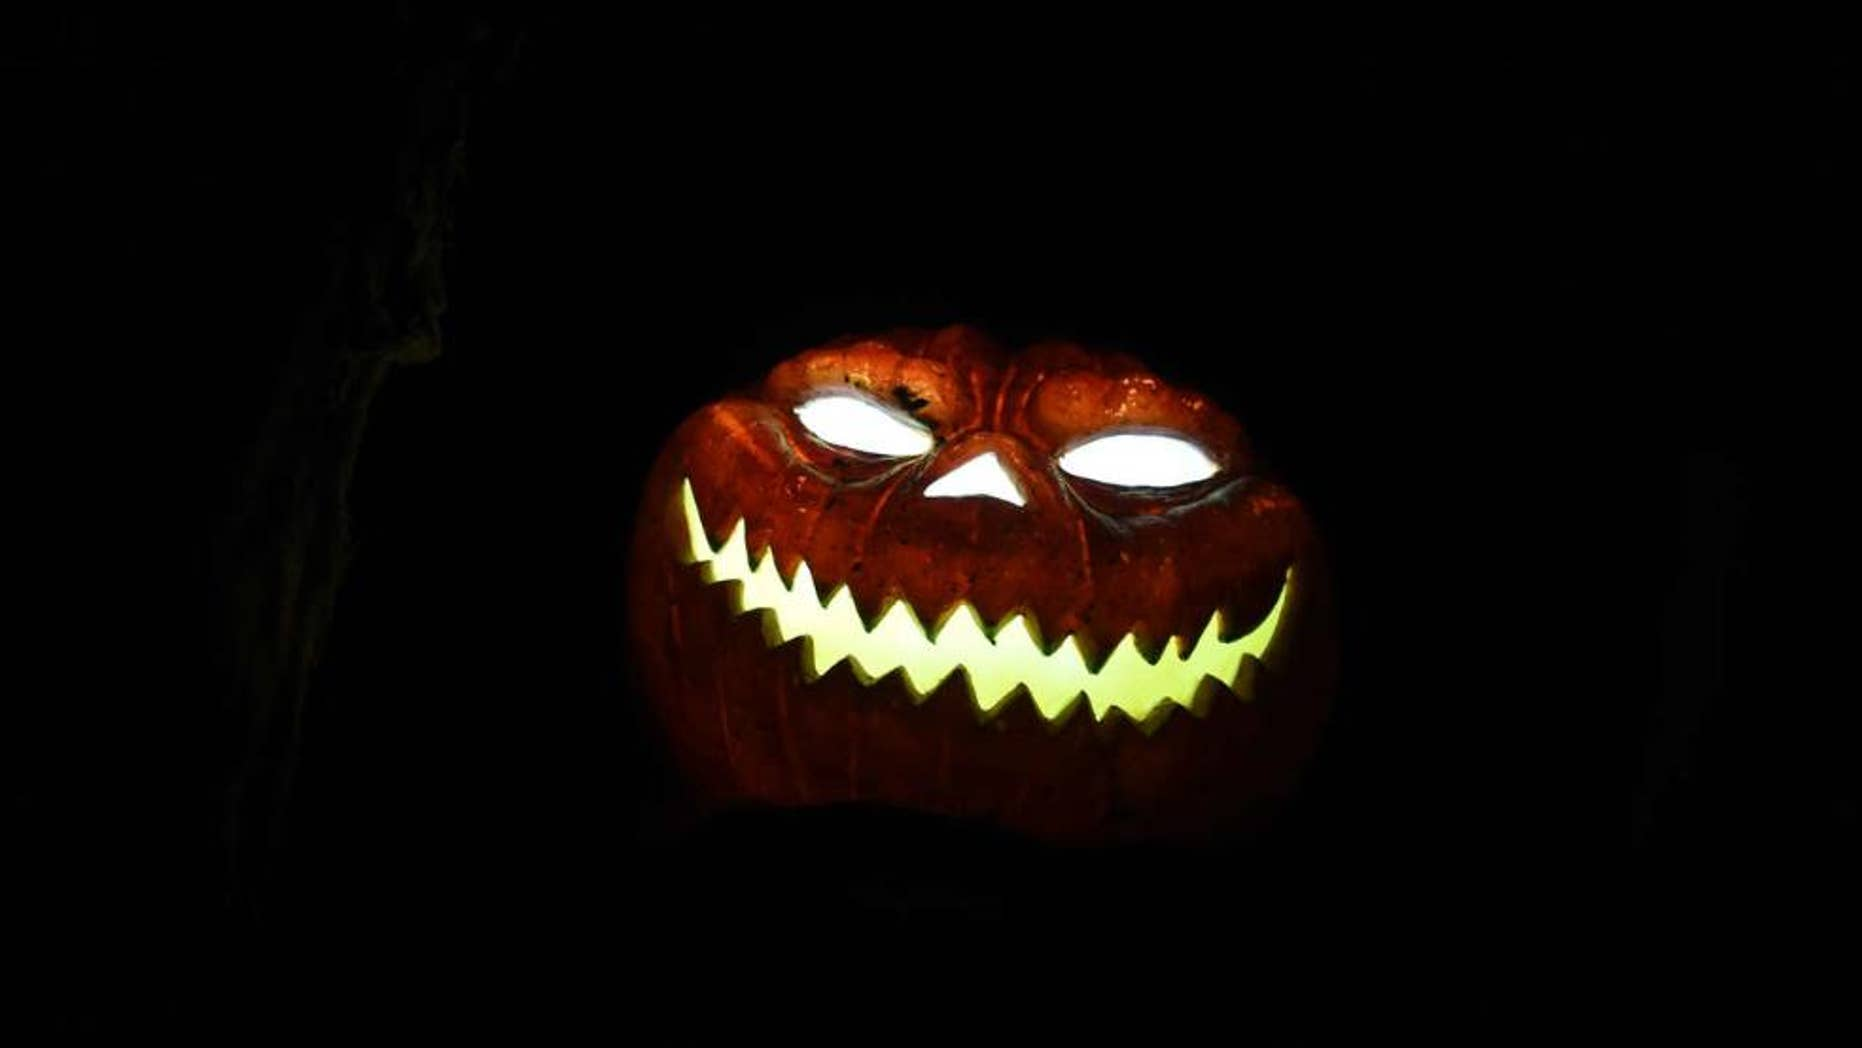 Tips for a safe and happy Halloween. (Carmen Jaspersen/AP Images)